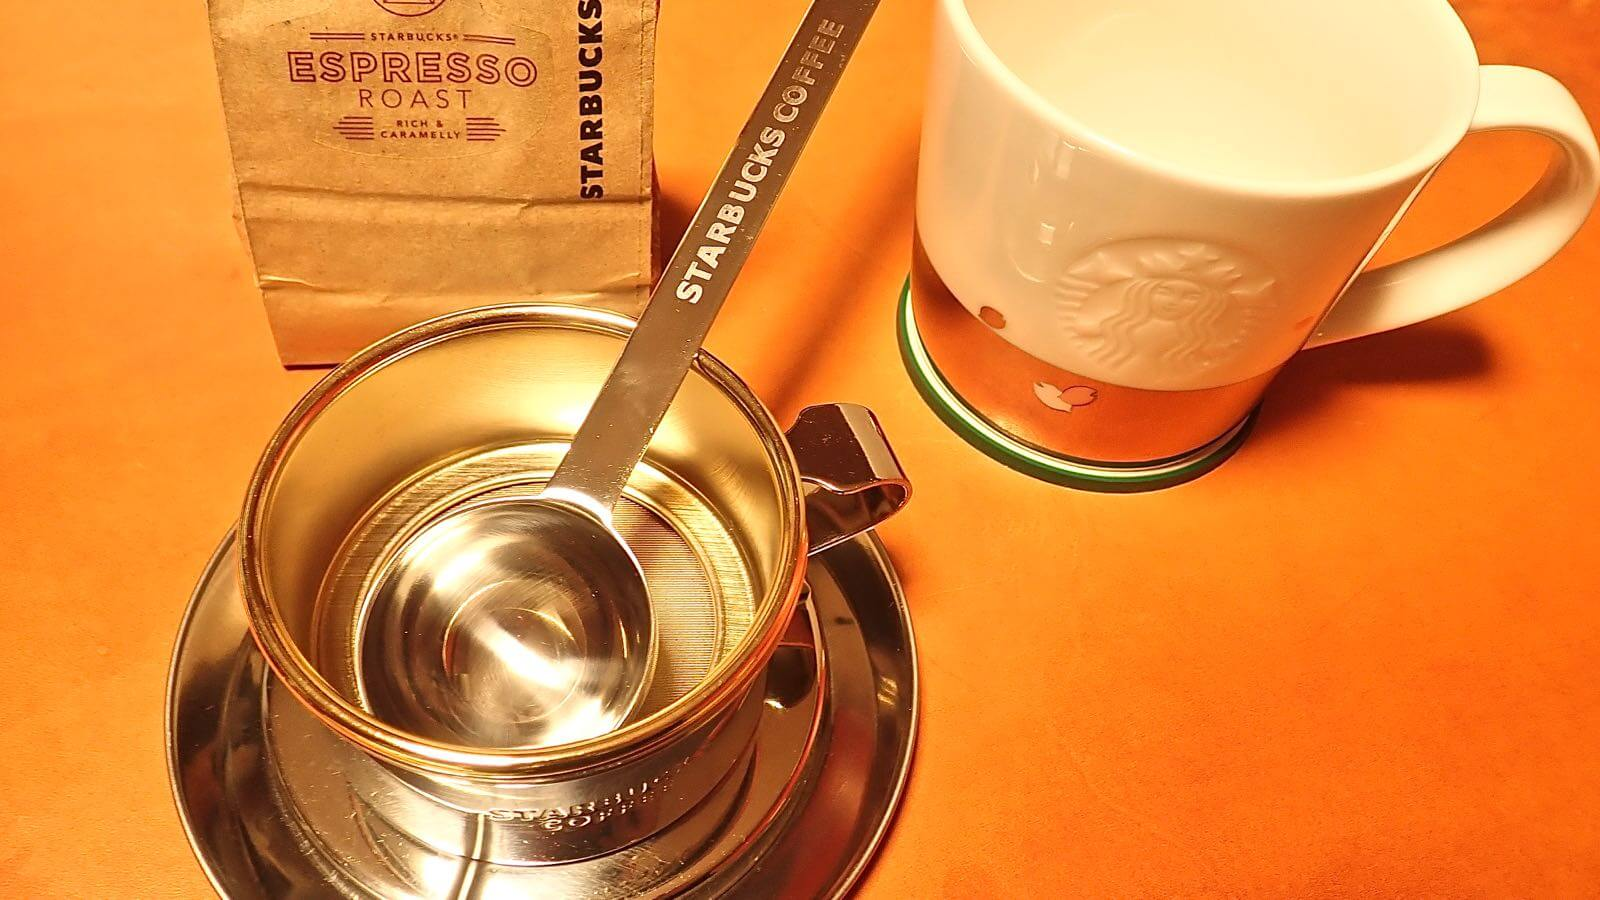 0014 Starbucks Stainless Dripper How to make delicious coffee 14